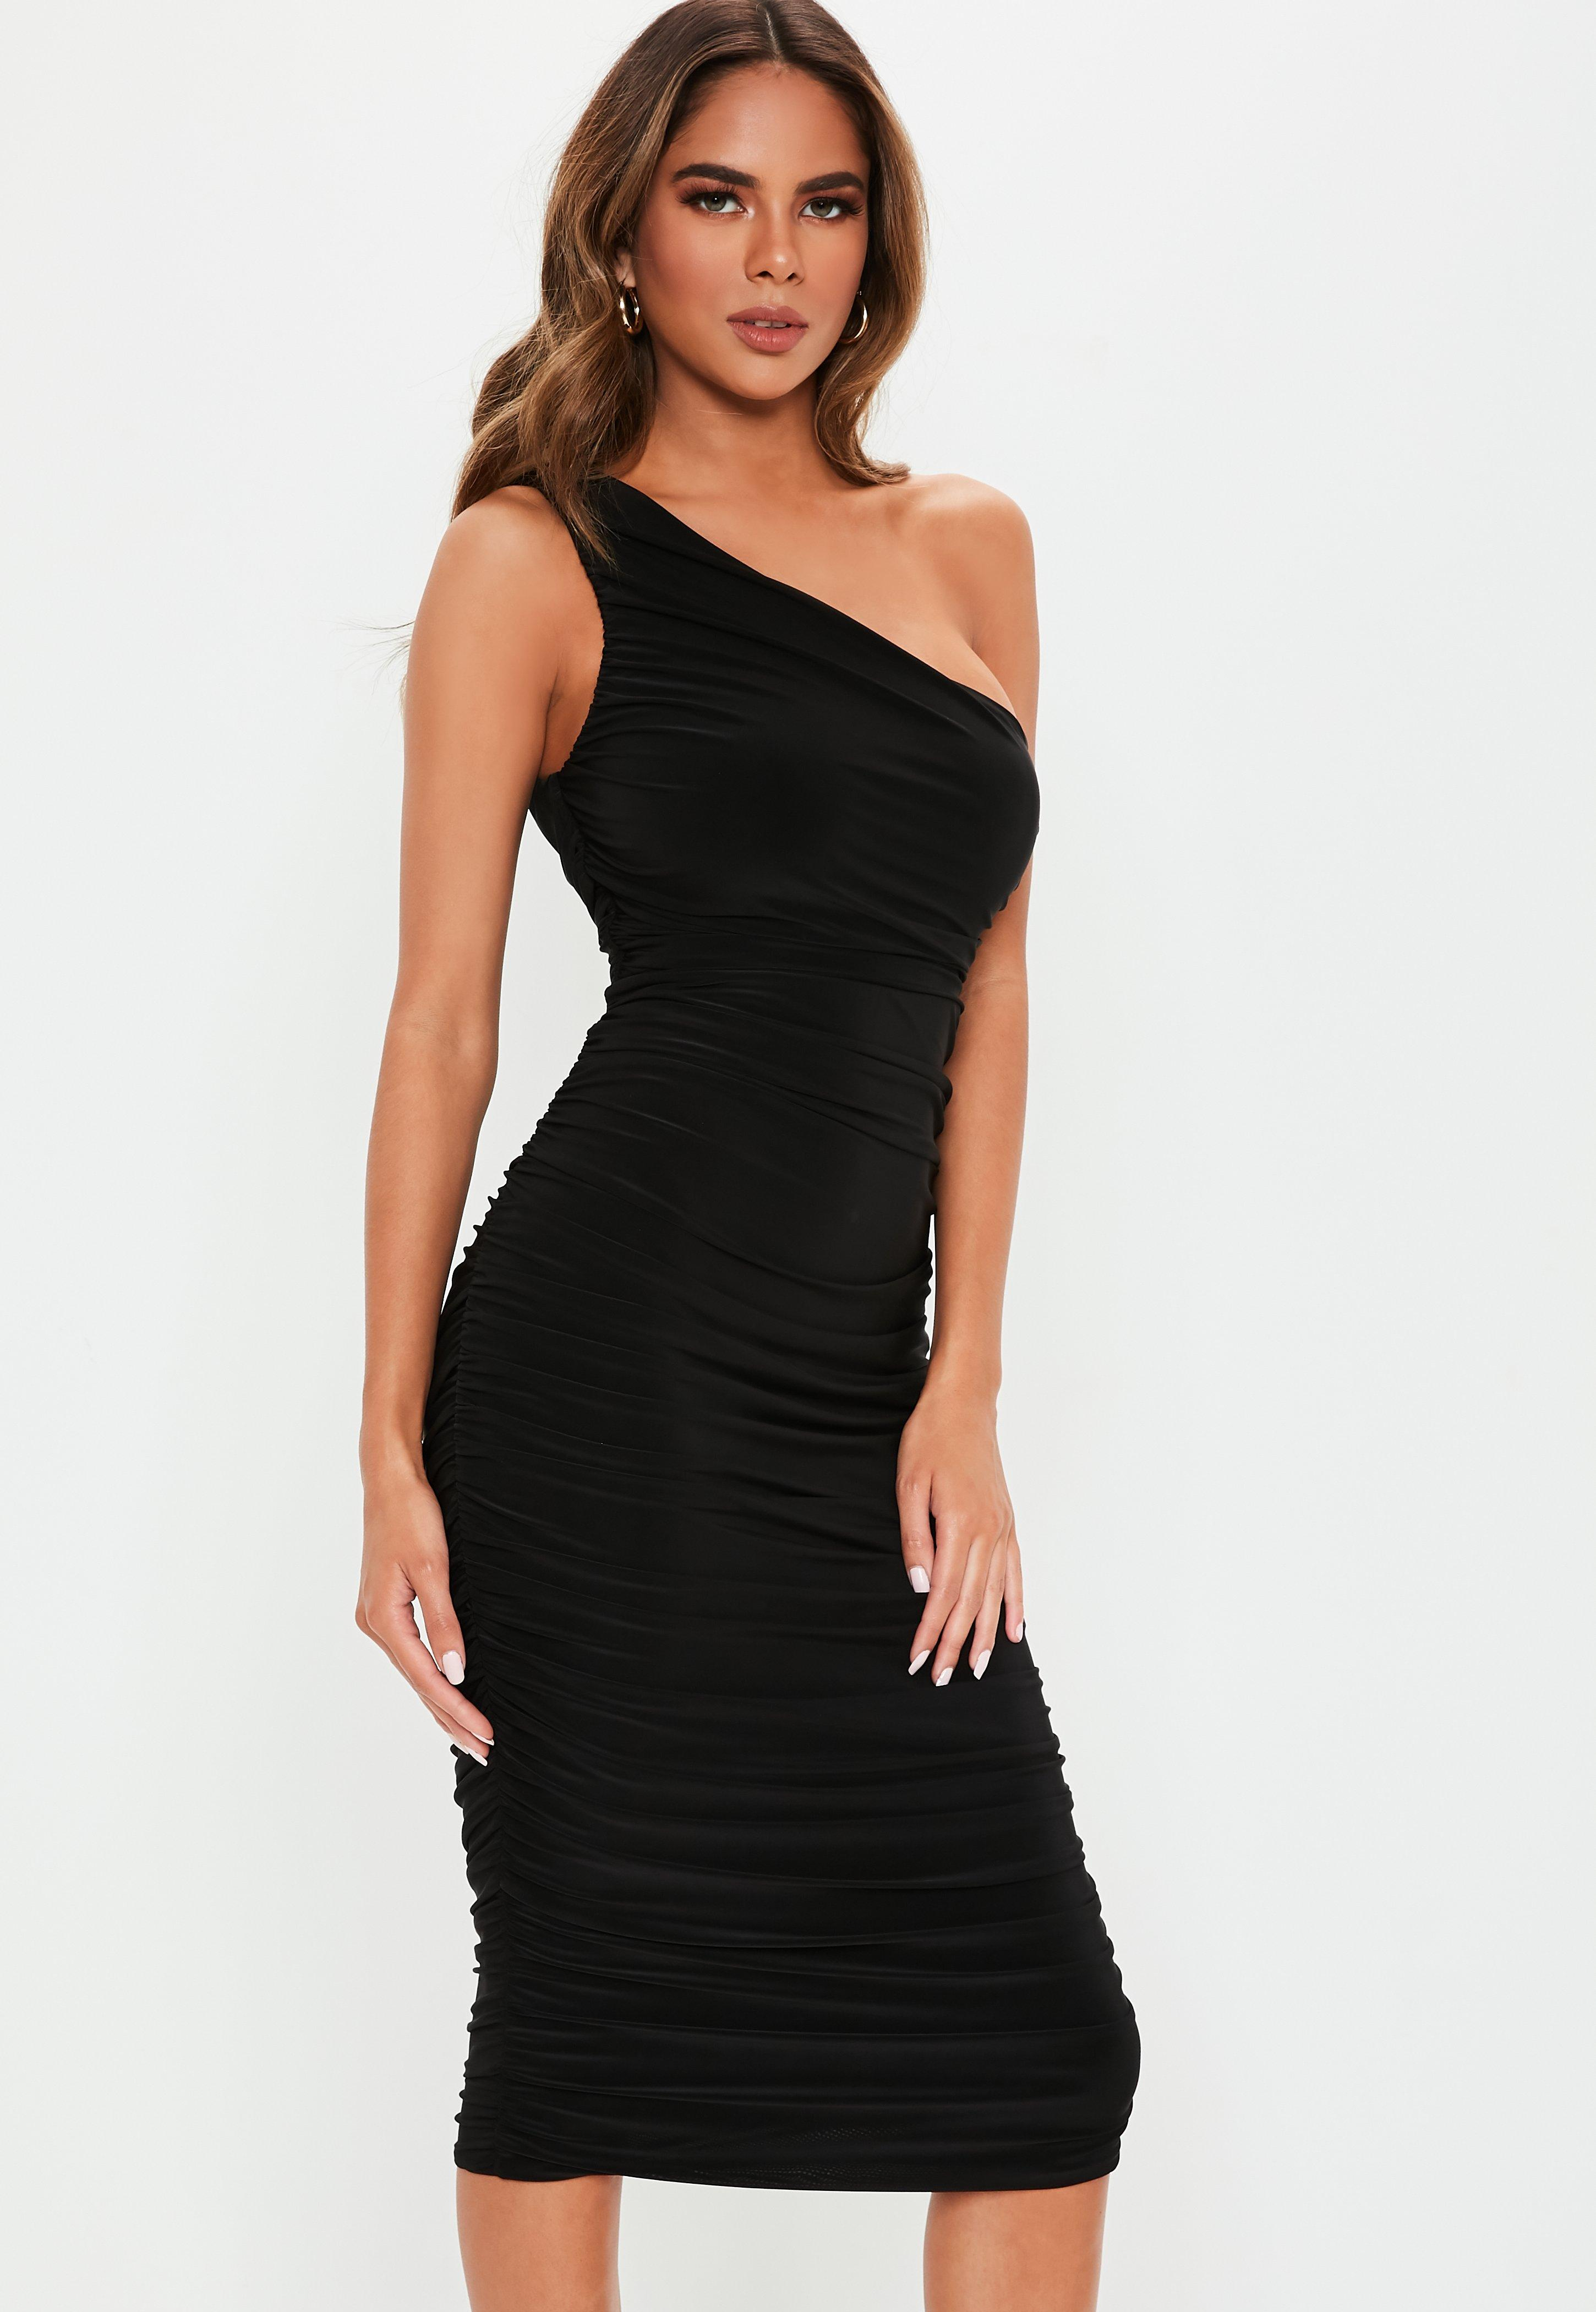 820909ffdbc9 Black Ruched One Shoulder Slinky Midi Dress | Missguided Australia